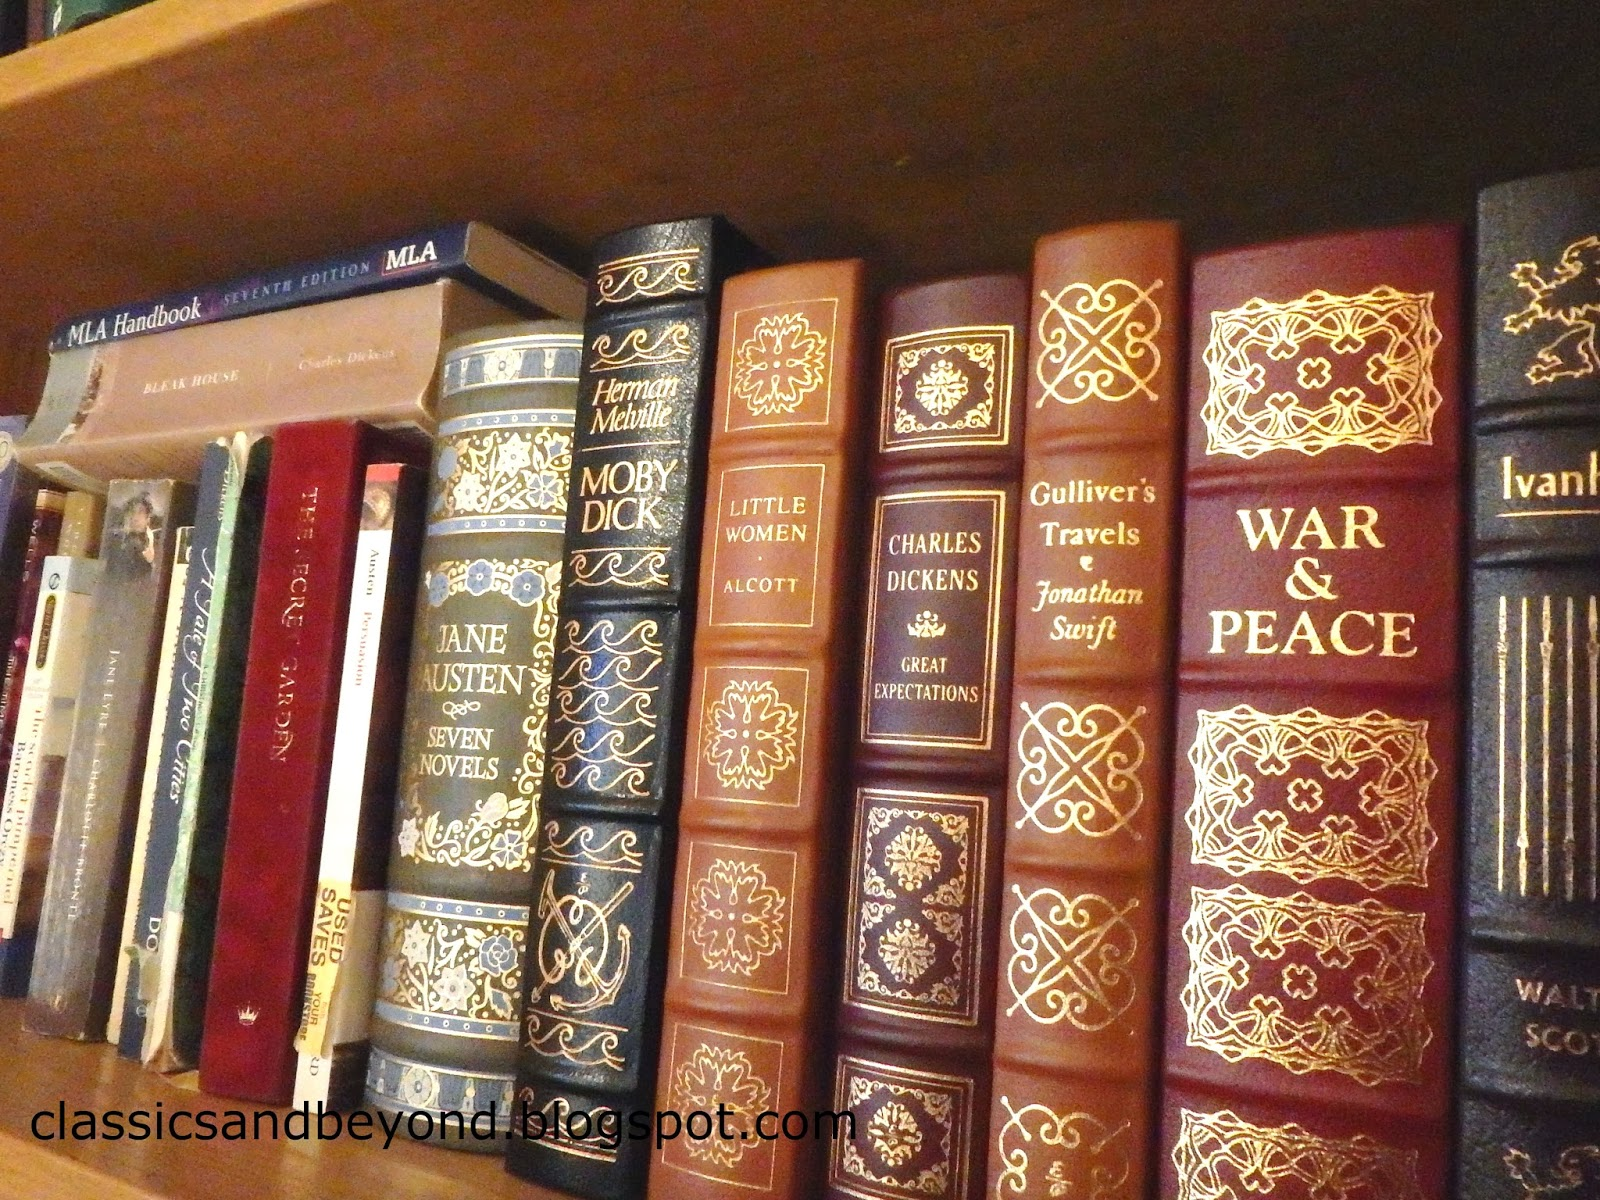 Classics and Beyond: My Bookshelves